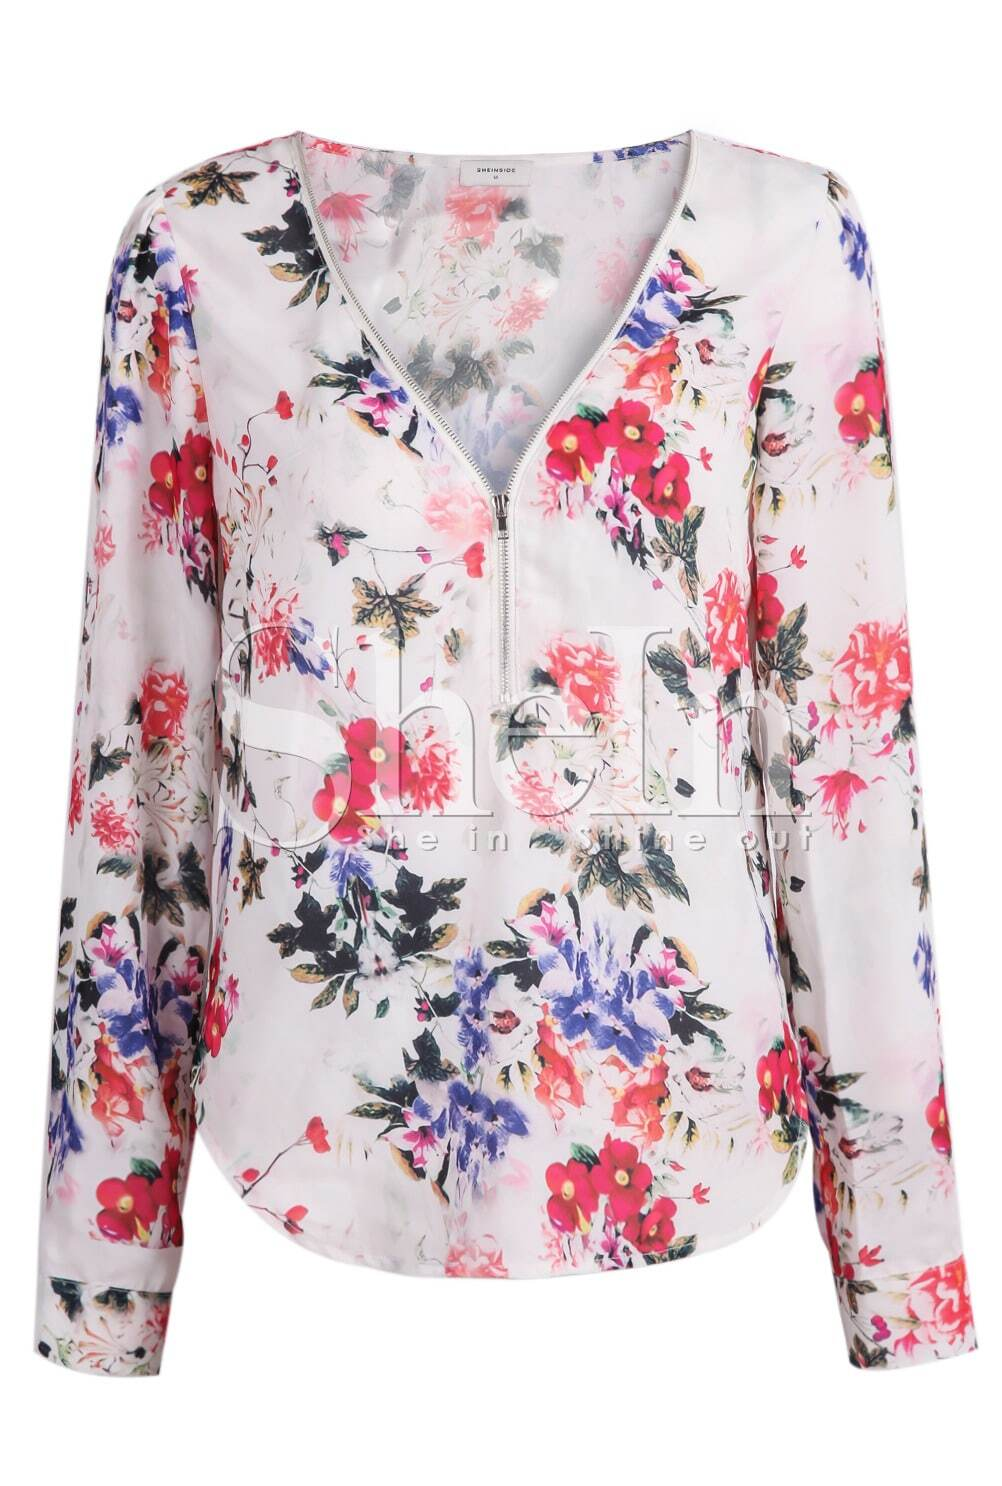 Buy WLLW Women Casual See Through Floral Print Long Sleeve Chiffon Shirt Blouse Tops and other Blouses & Button-Down Shirts at cheswick-stand.tk Our wide /5().